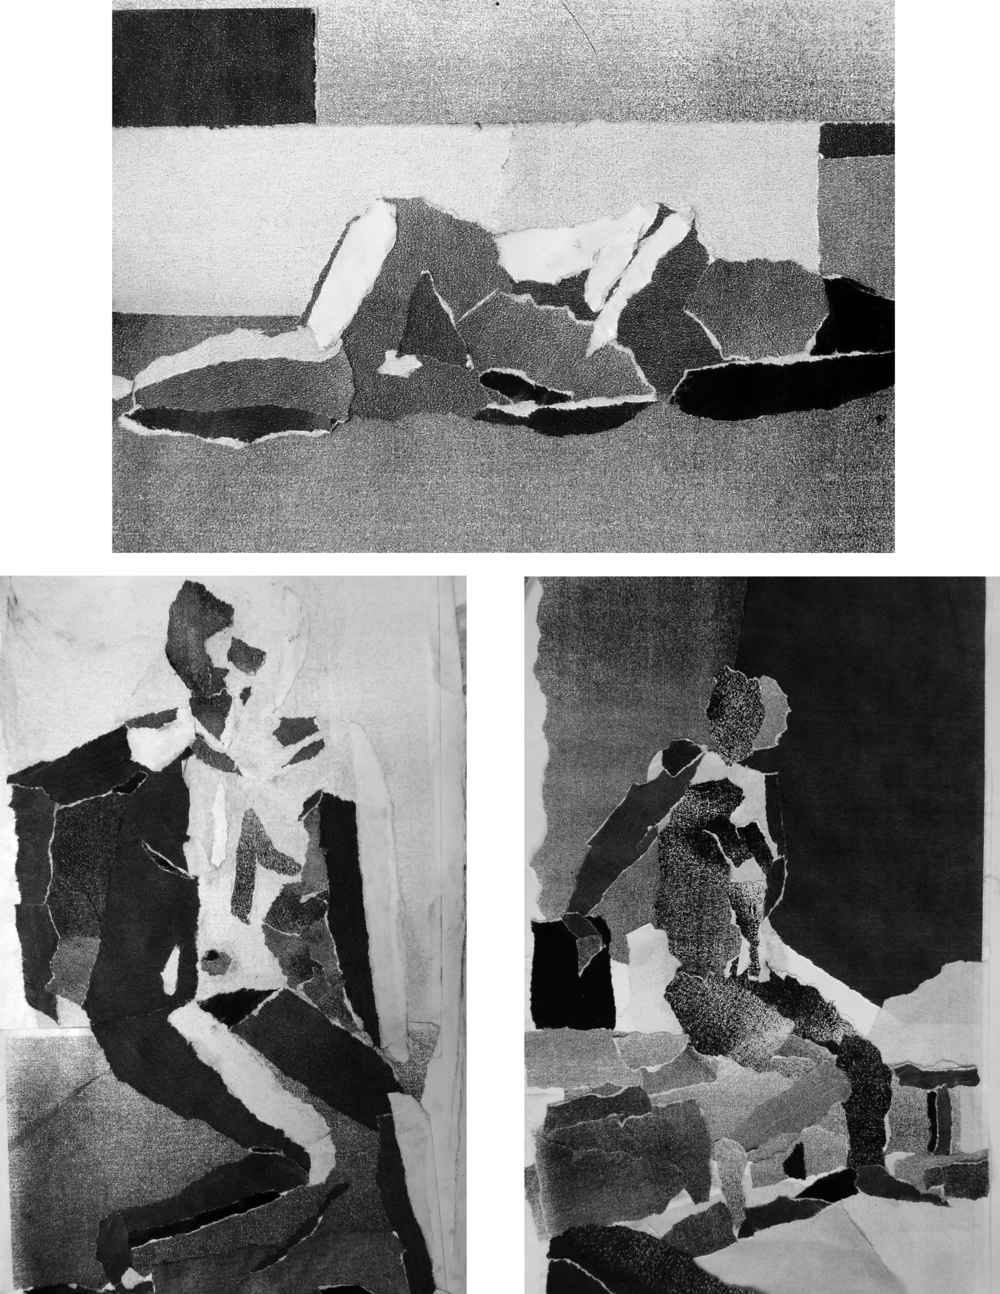 83-Collagefigures.jpg